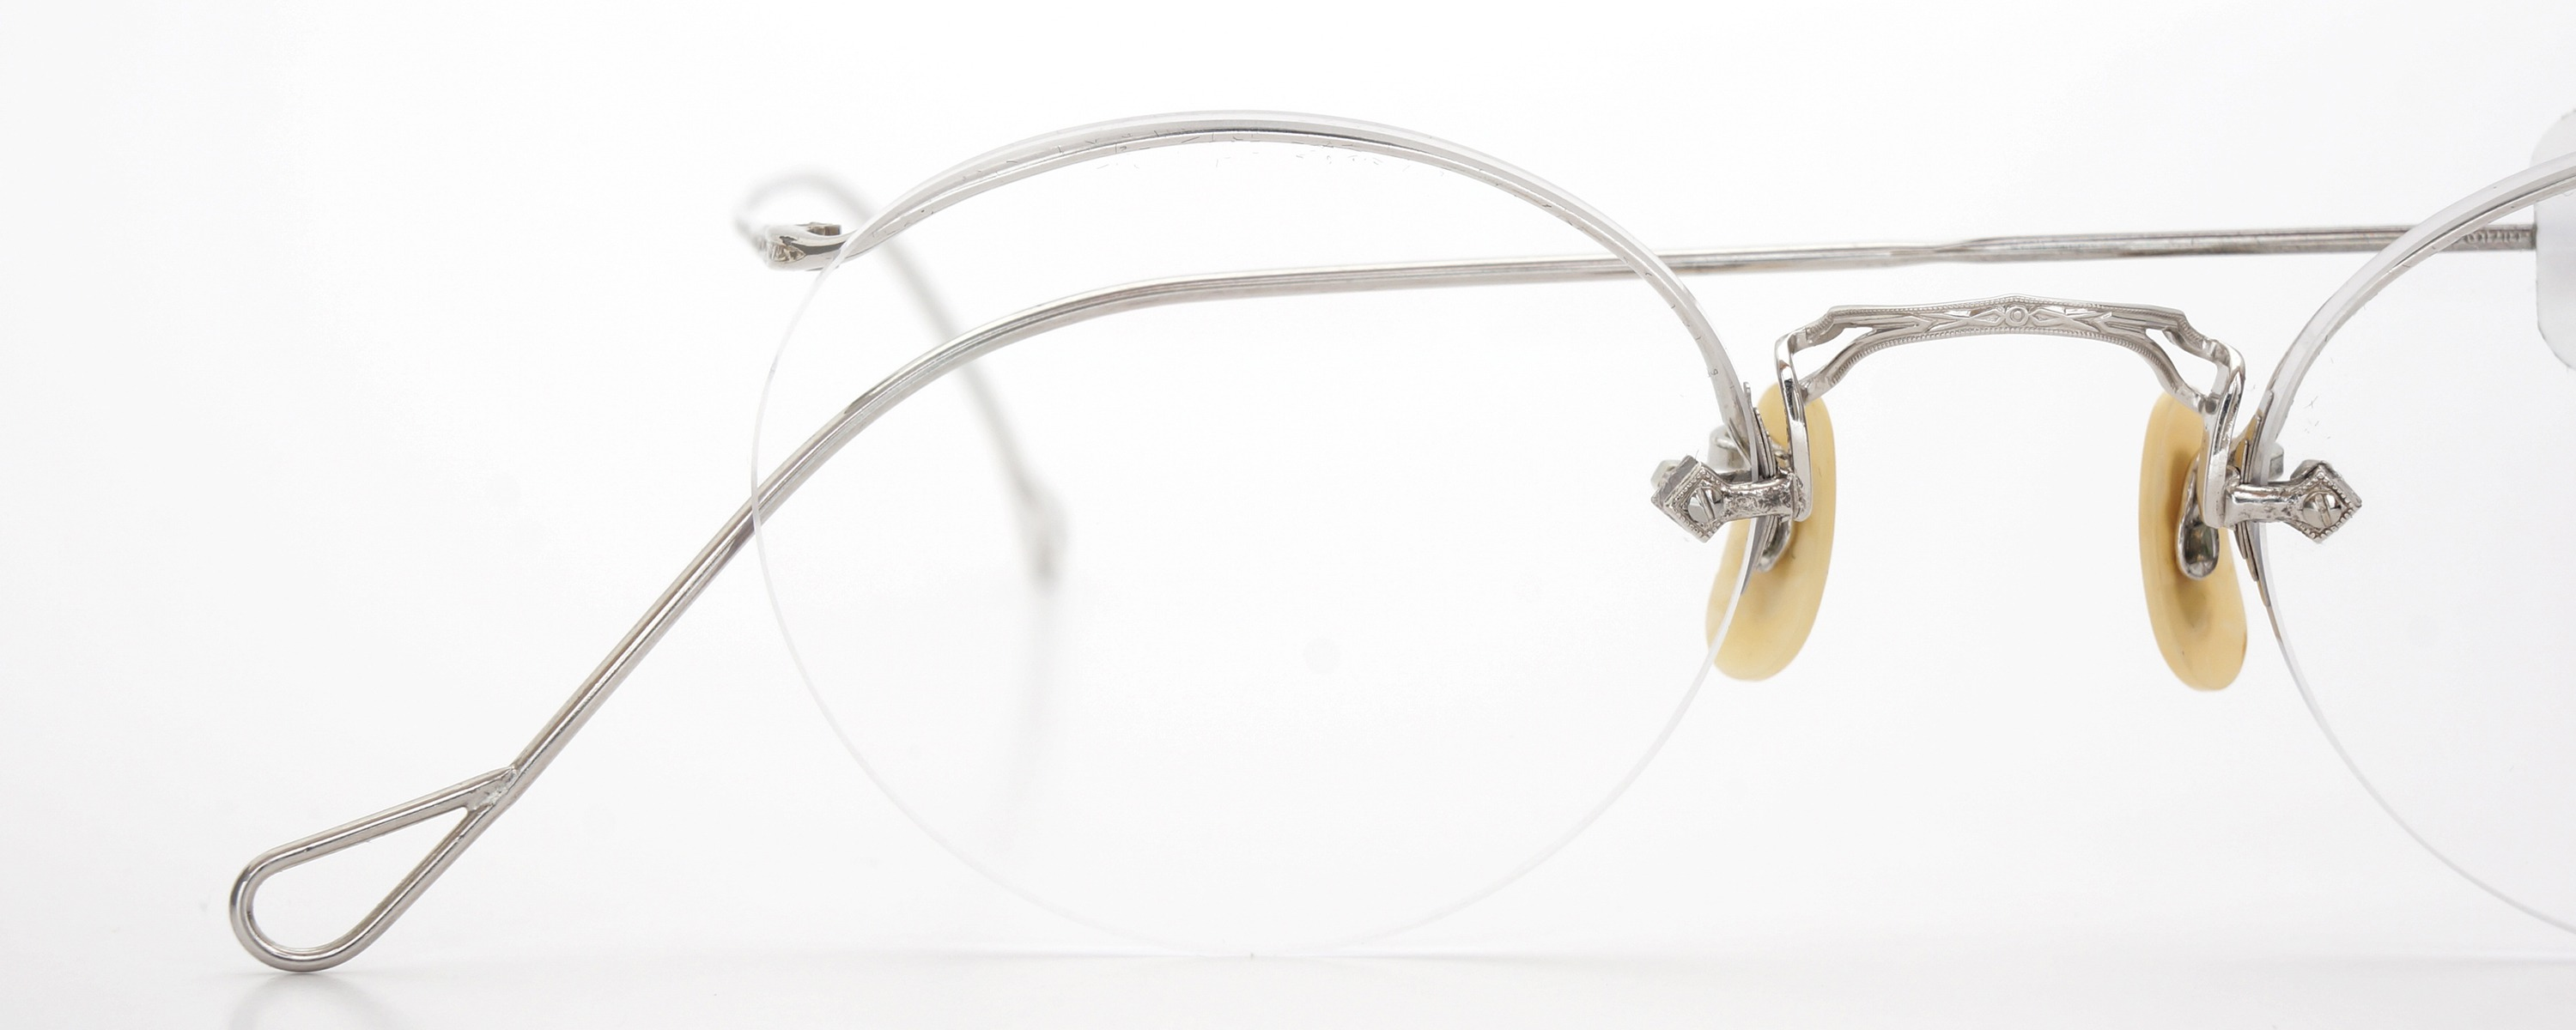 The Spectacle メガネ 1938 American Optical Numont Ful-Vue P-6 WG 45-23 イメージ17